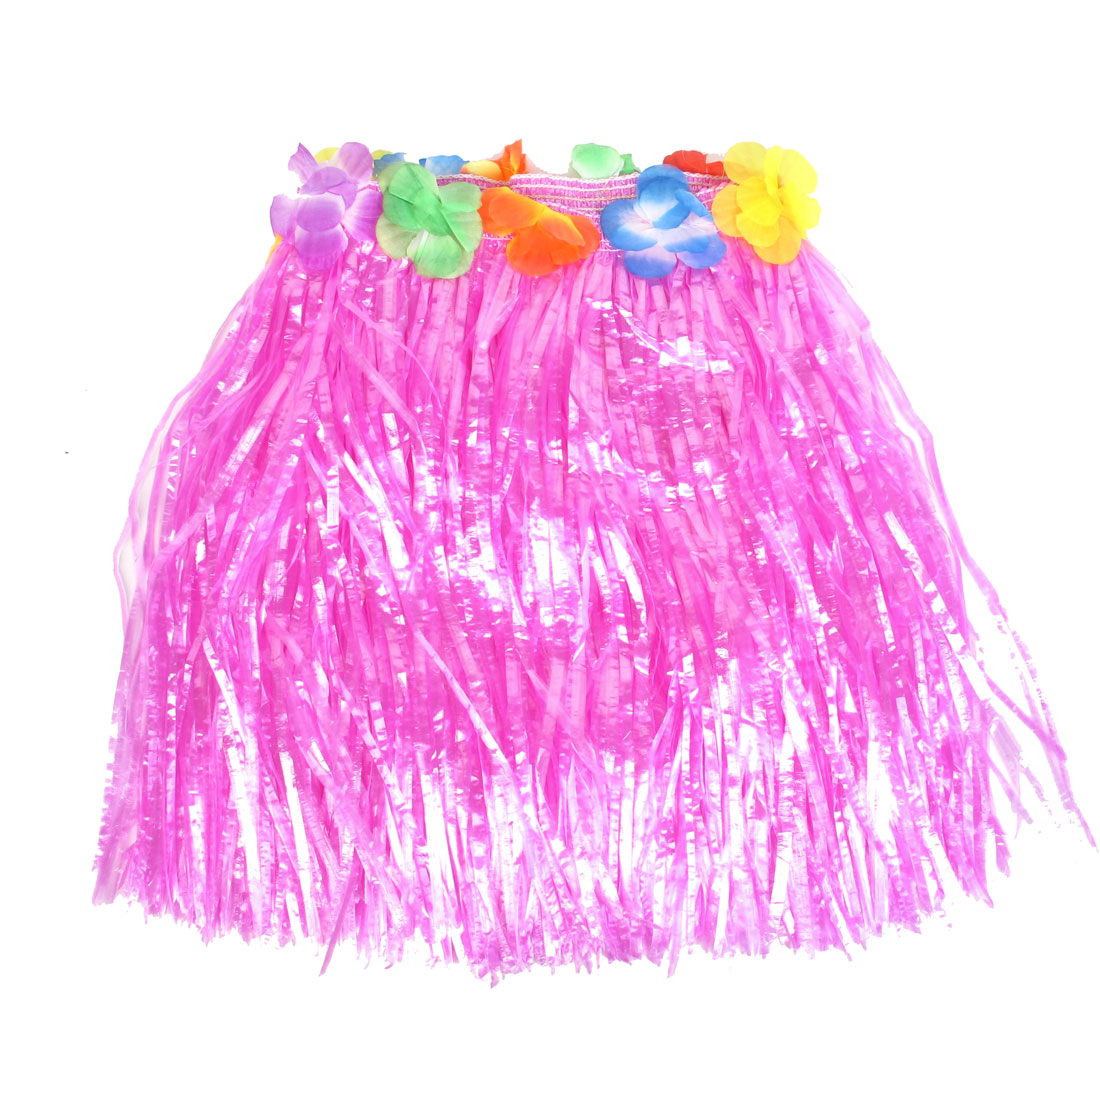 Festival Halloween Flowers Decor Hawaiian Hula Grass Skirt Fuchsia XS(US.0) for Lady